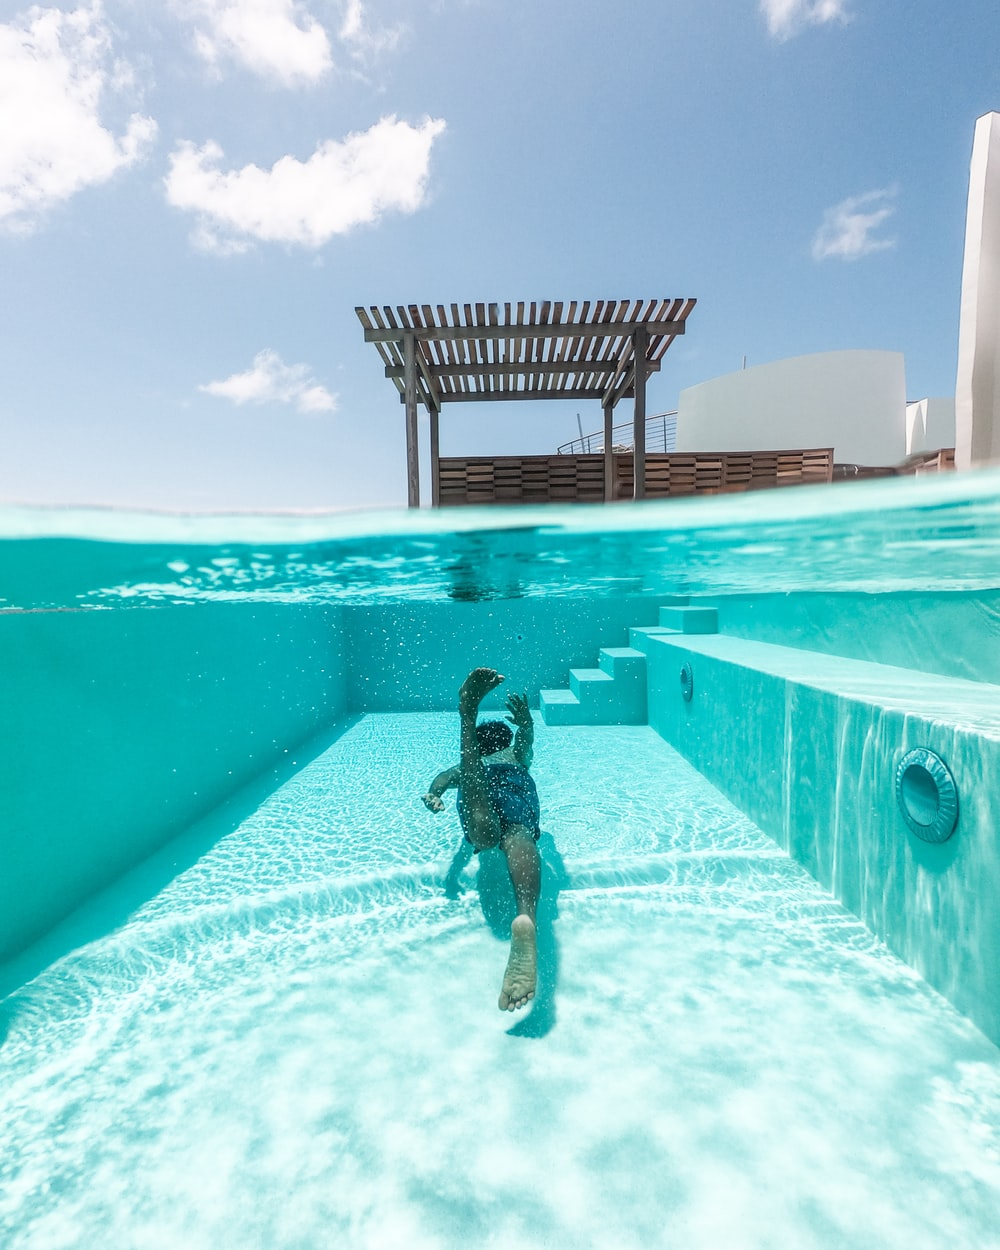 person swimming in rectangular green swimming pool under blue and white sky